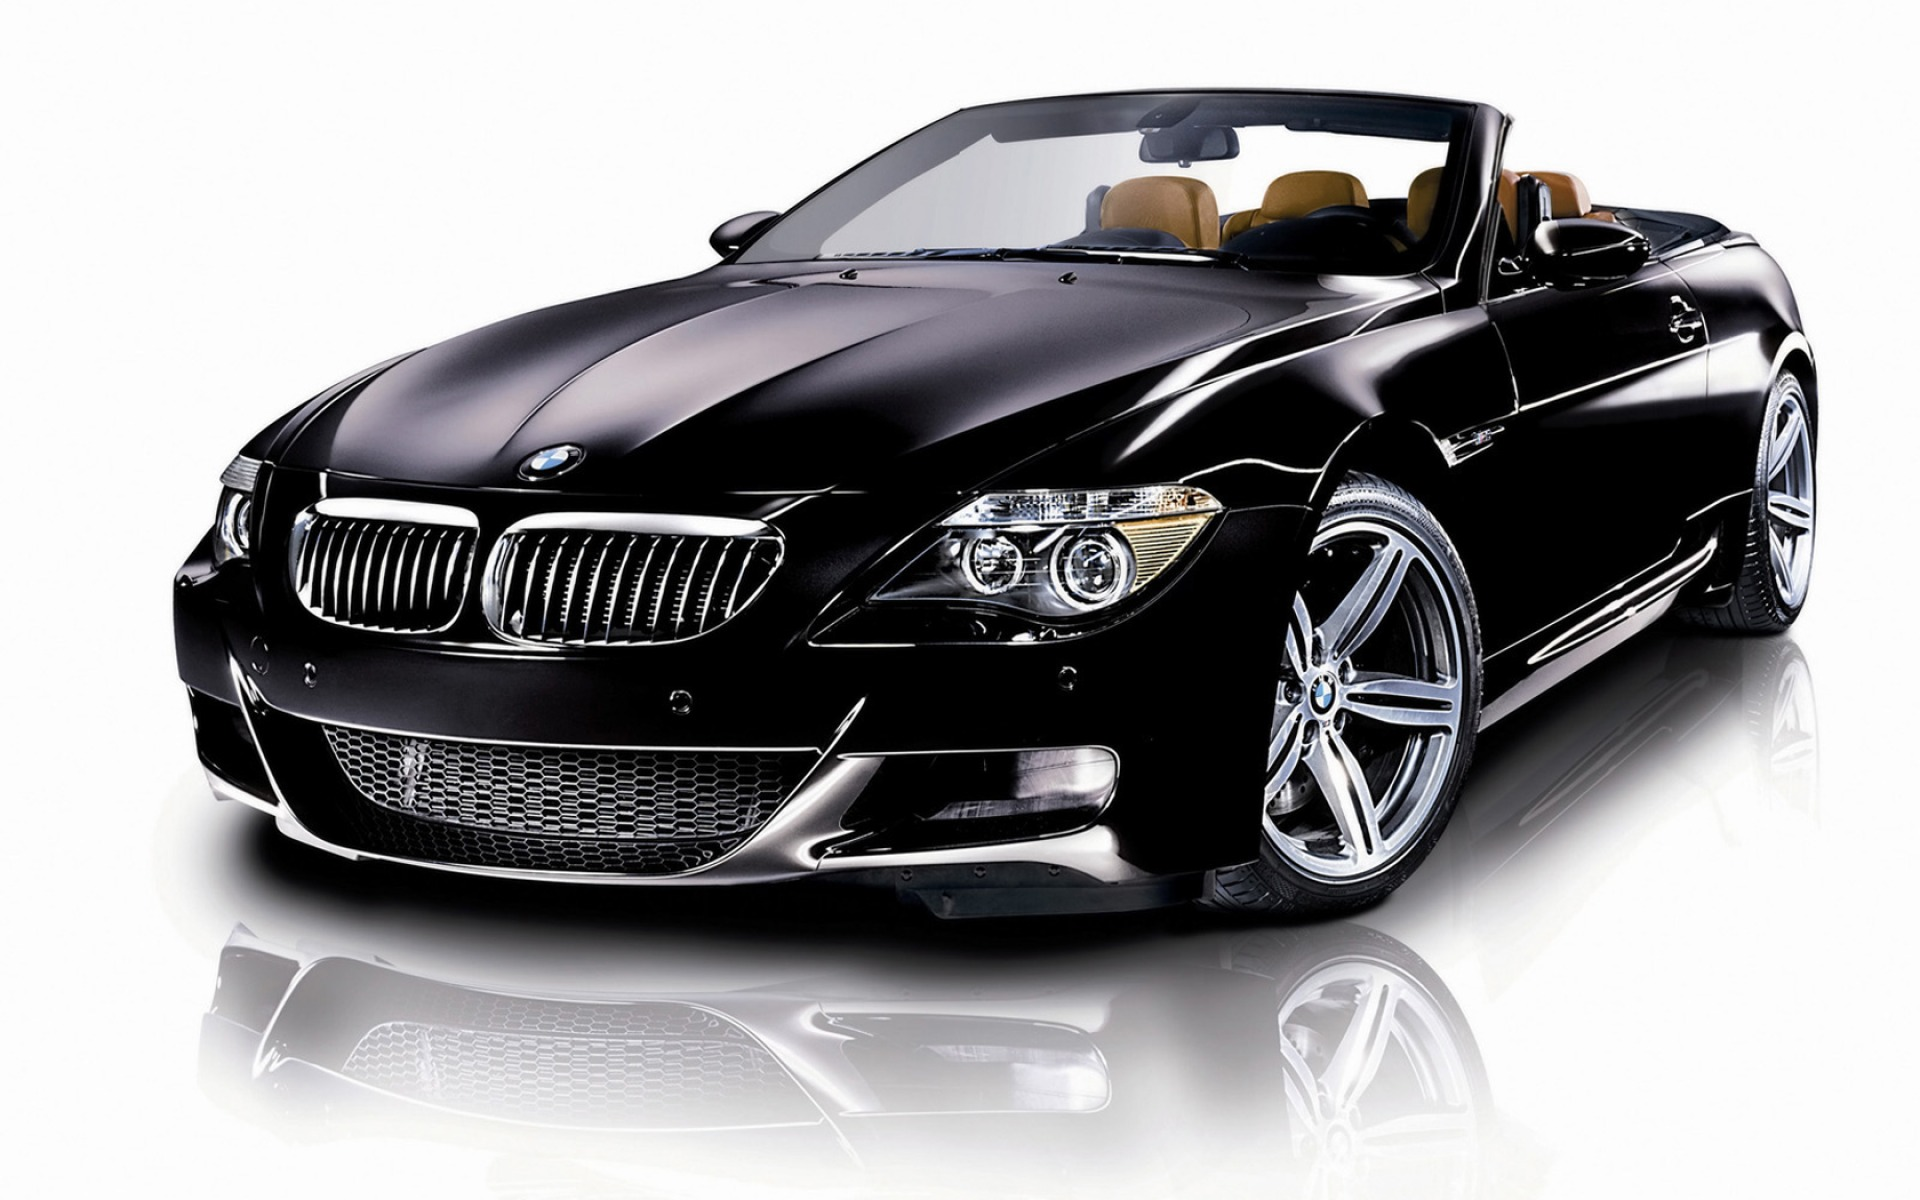 Ultrablogus  Splendid Bmw Car Wallpaper Wallpapers For Free Download About   With Magnificent Bmw M Convertible Wallpaper Bmw Cars With Easy On The Eye Hyundai Coupe Interior Also Mercedes Sl Interior In Addition Mini  Interior And I Interior As Well As Phantom Interior Additionally Interior Of Lamborghini Gallardo From Allfreedownloadcom With Ultrablogus  Magnificent Bmw Car Wallpaper Wallpapers For Free Download About   With Easy On The Eye Bmw M Convertible Wallpaper Bmw Cars And Splendid Hyundai Coupe Interior Also Mercedes Sl Interior In Addition Mini  Interior From Allfreedownloadcom